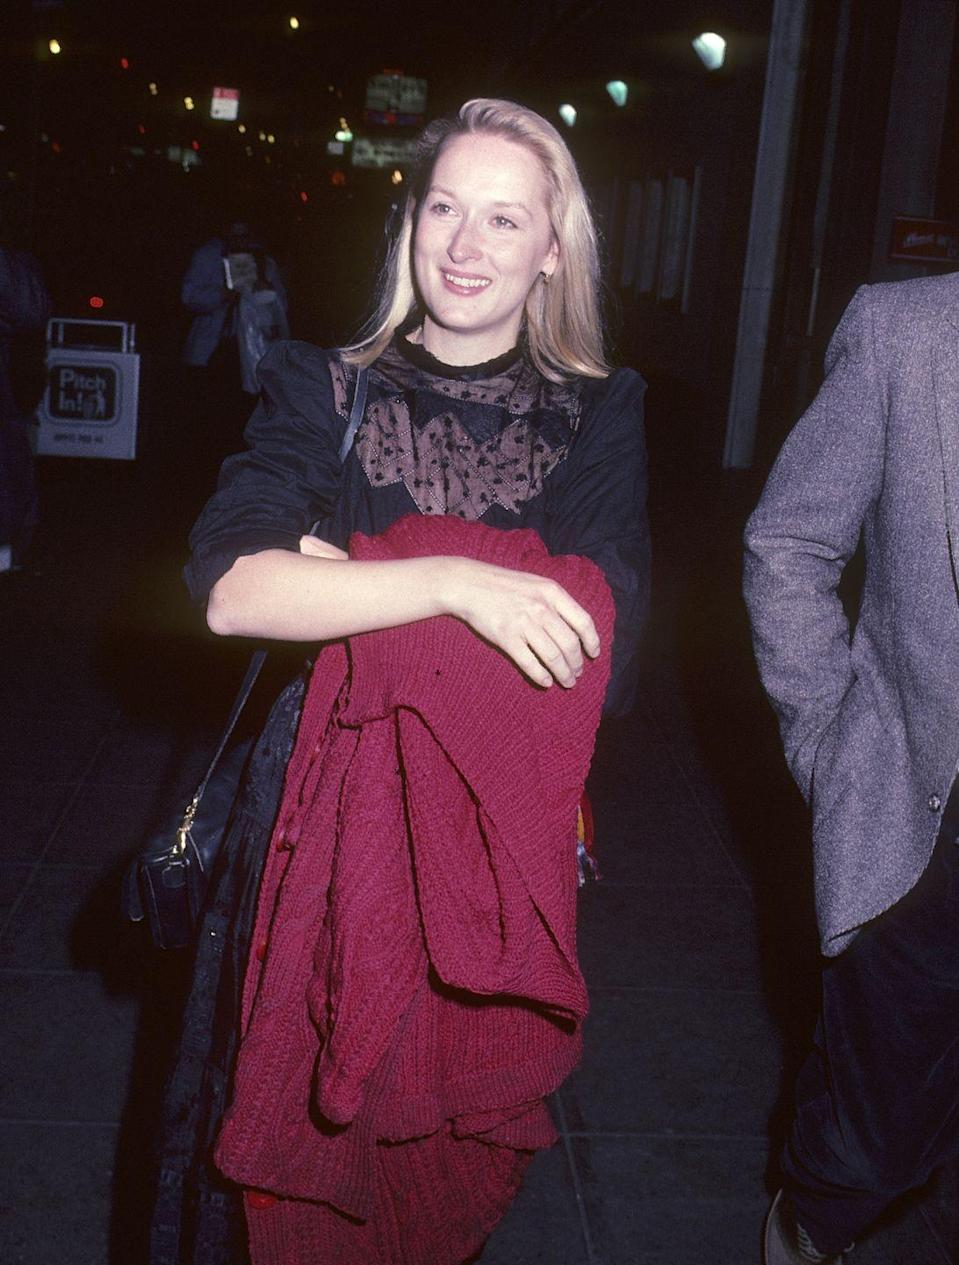 <p>Before winning three Oscars and nine Golden Globes, Meryl Streep got her start on Broadway. She starred in <em>Trelawny of the Wells </em>in 1975. One year later, she earned a Tony Award nomination for <em>27 Wagons Full of Cotton.</em> Streep's star continued to shine with film roles in <em>Kramer vs. Kramer, Sophie's Choice </em>and <em>The Bridges of Madison County. </em><br></p>